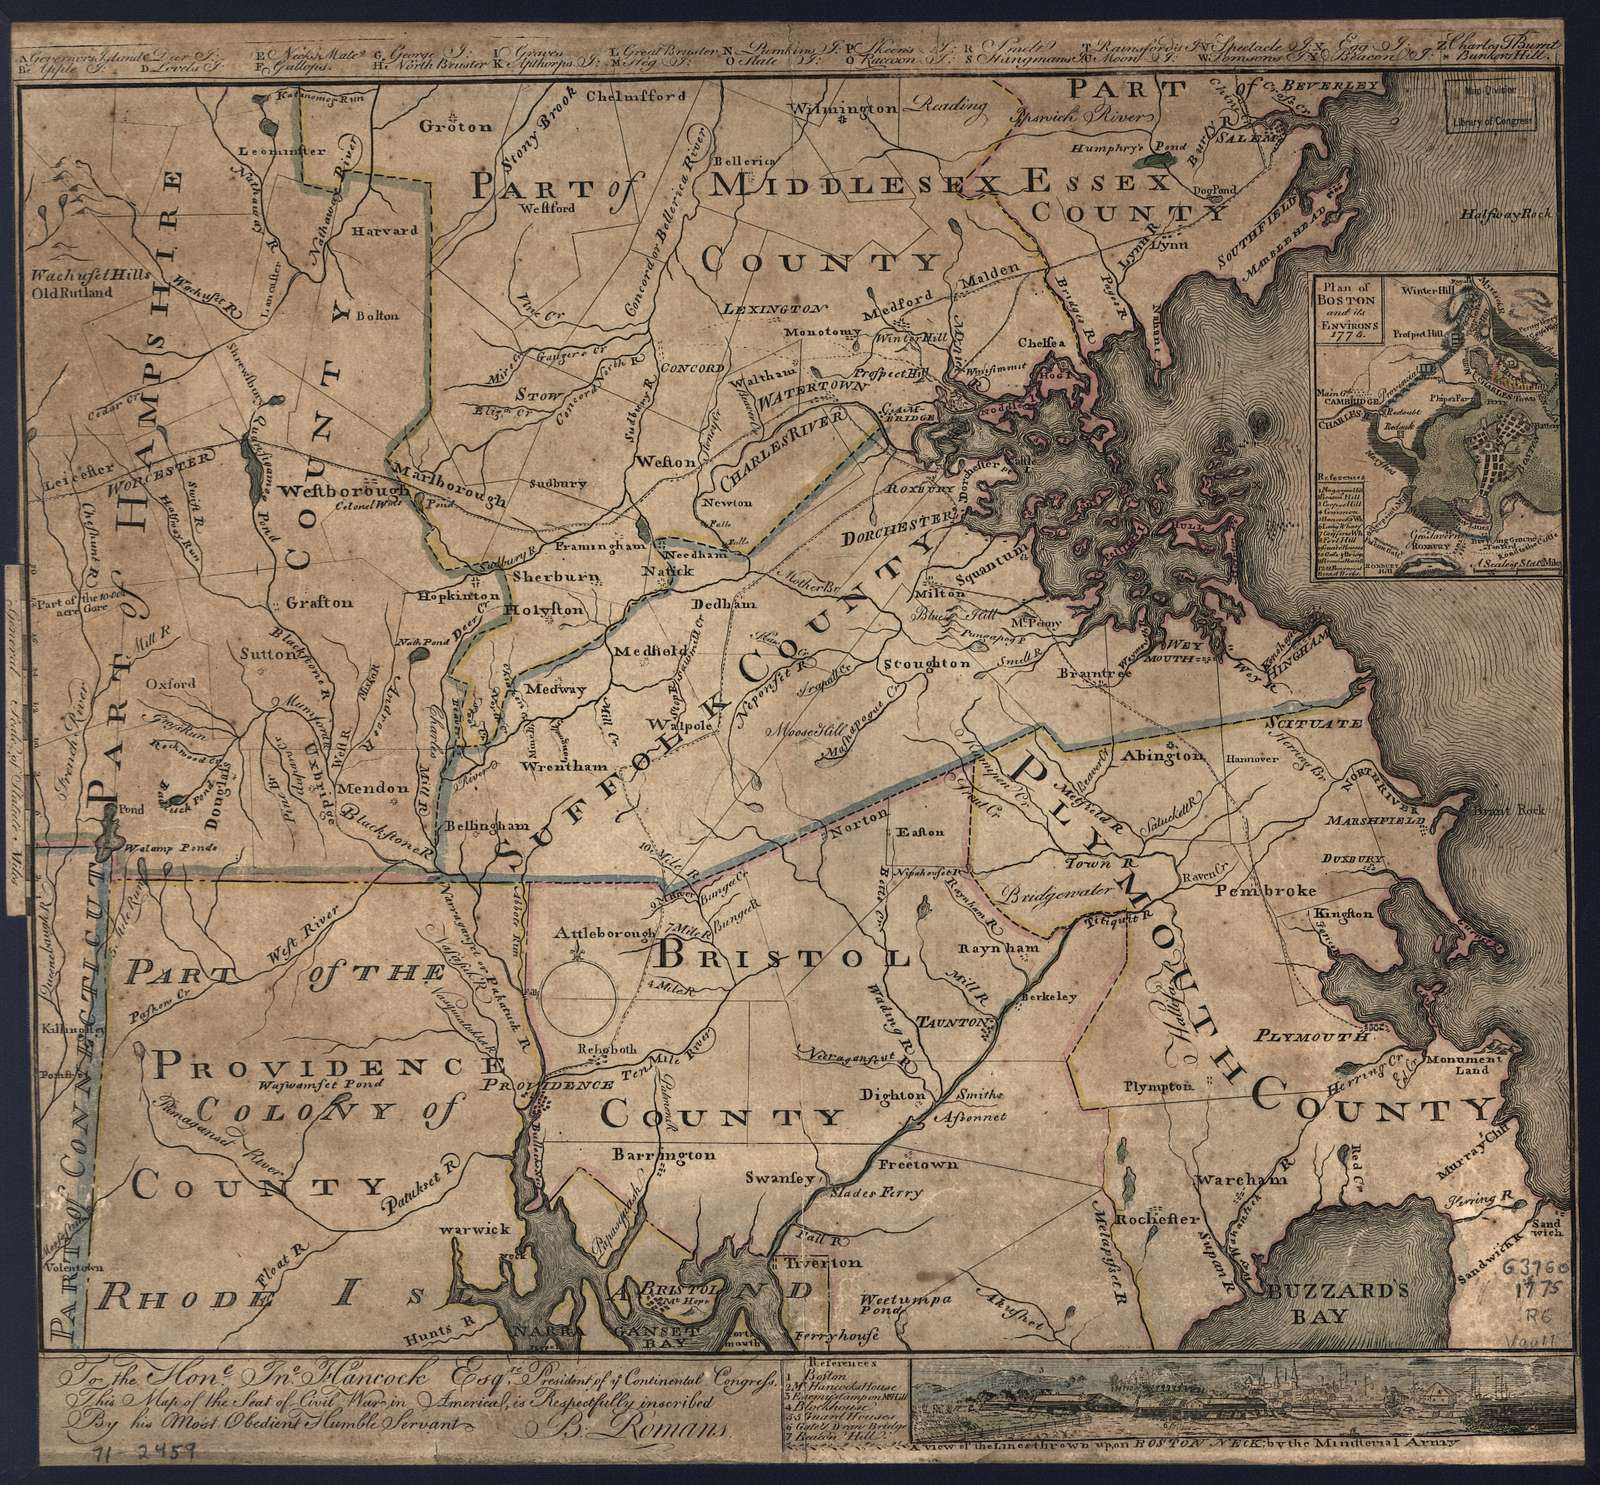 To the Hone. Jno. Hancock, Esqre. president of ye Continental Congress, this map of the seat of civil war in America, is respectfully inscribed by his most obedient humble servant, B. Romans.